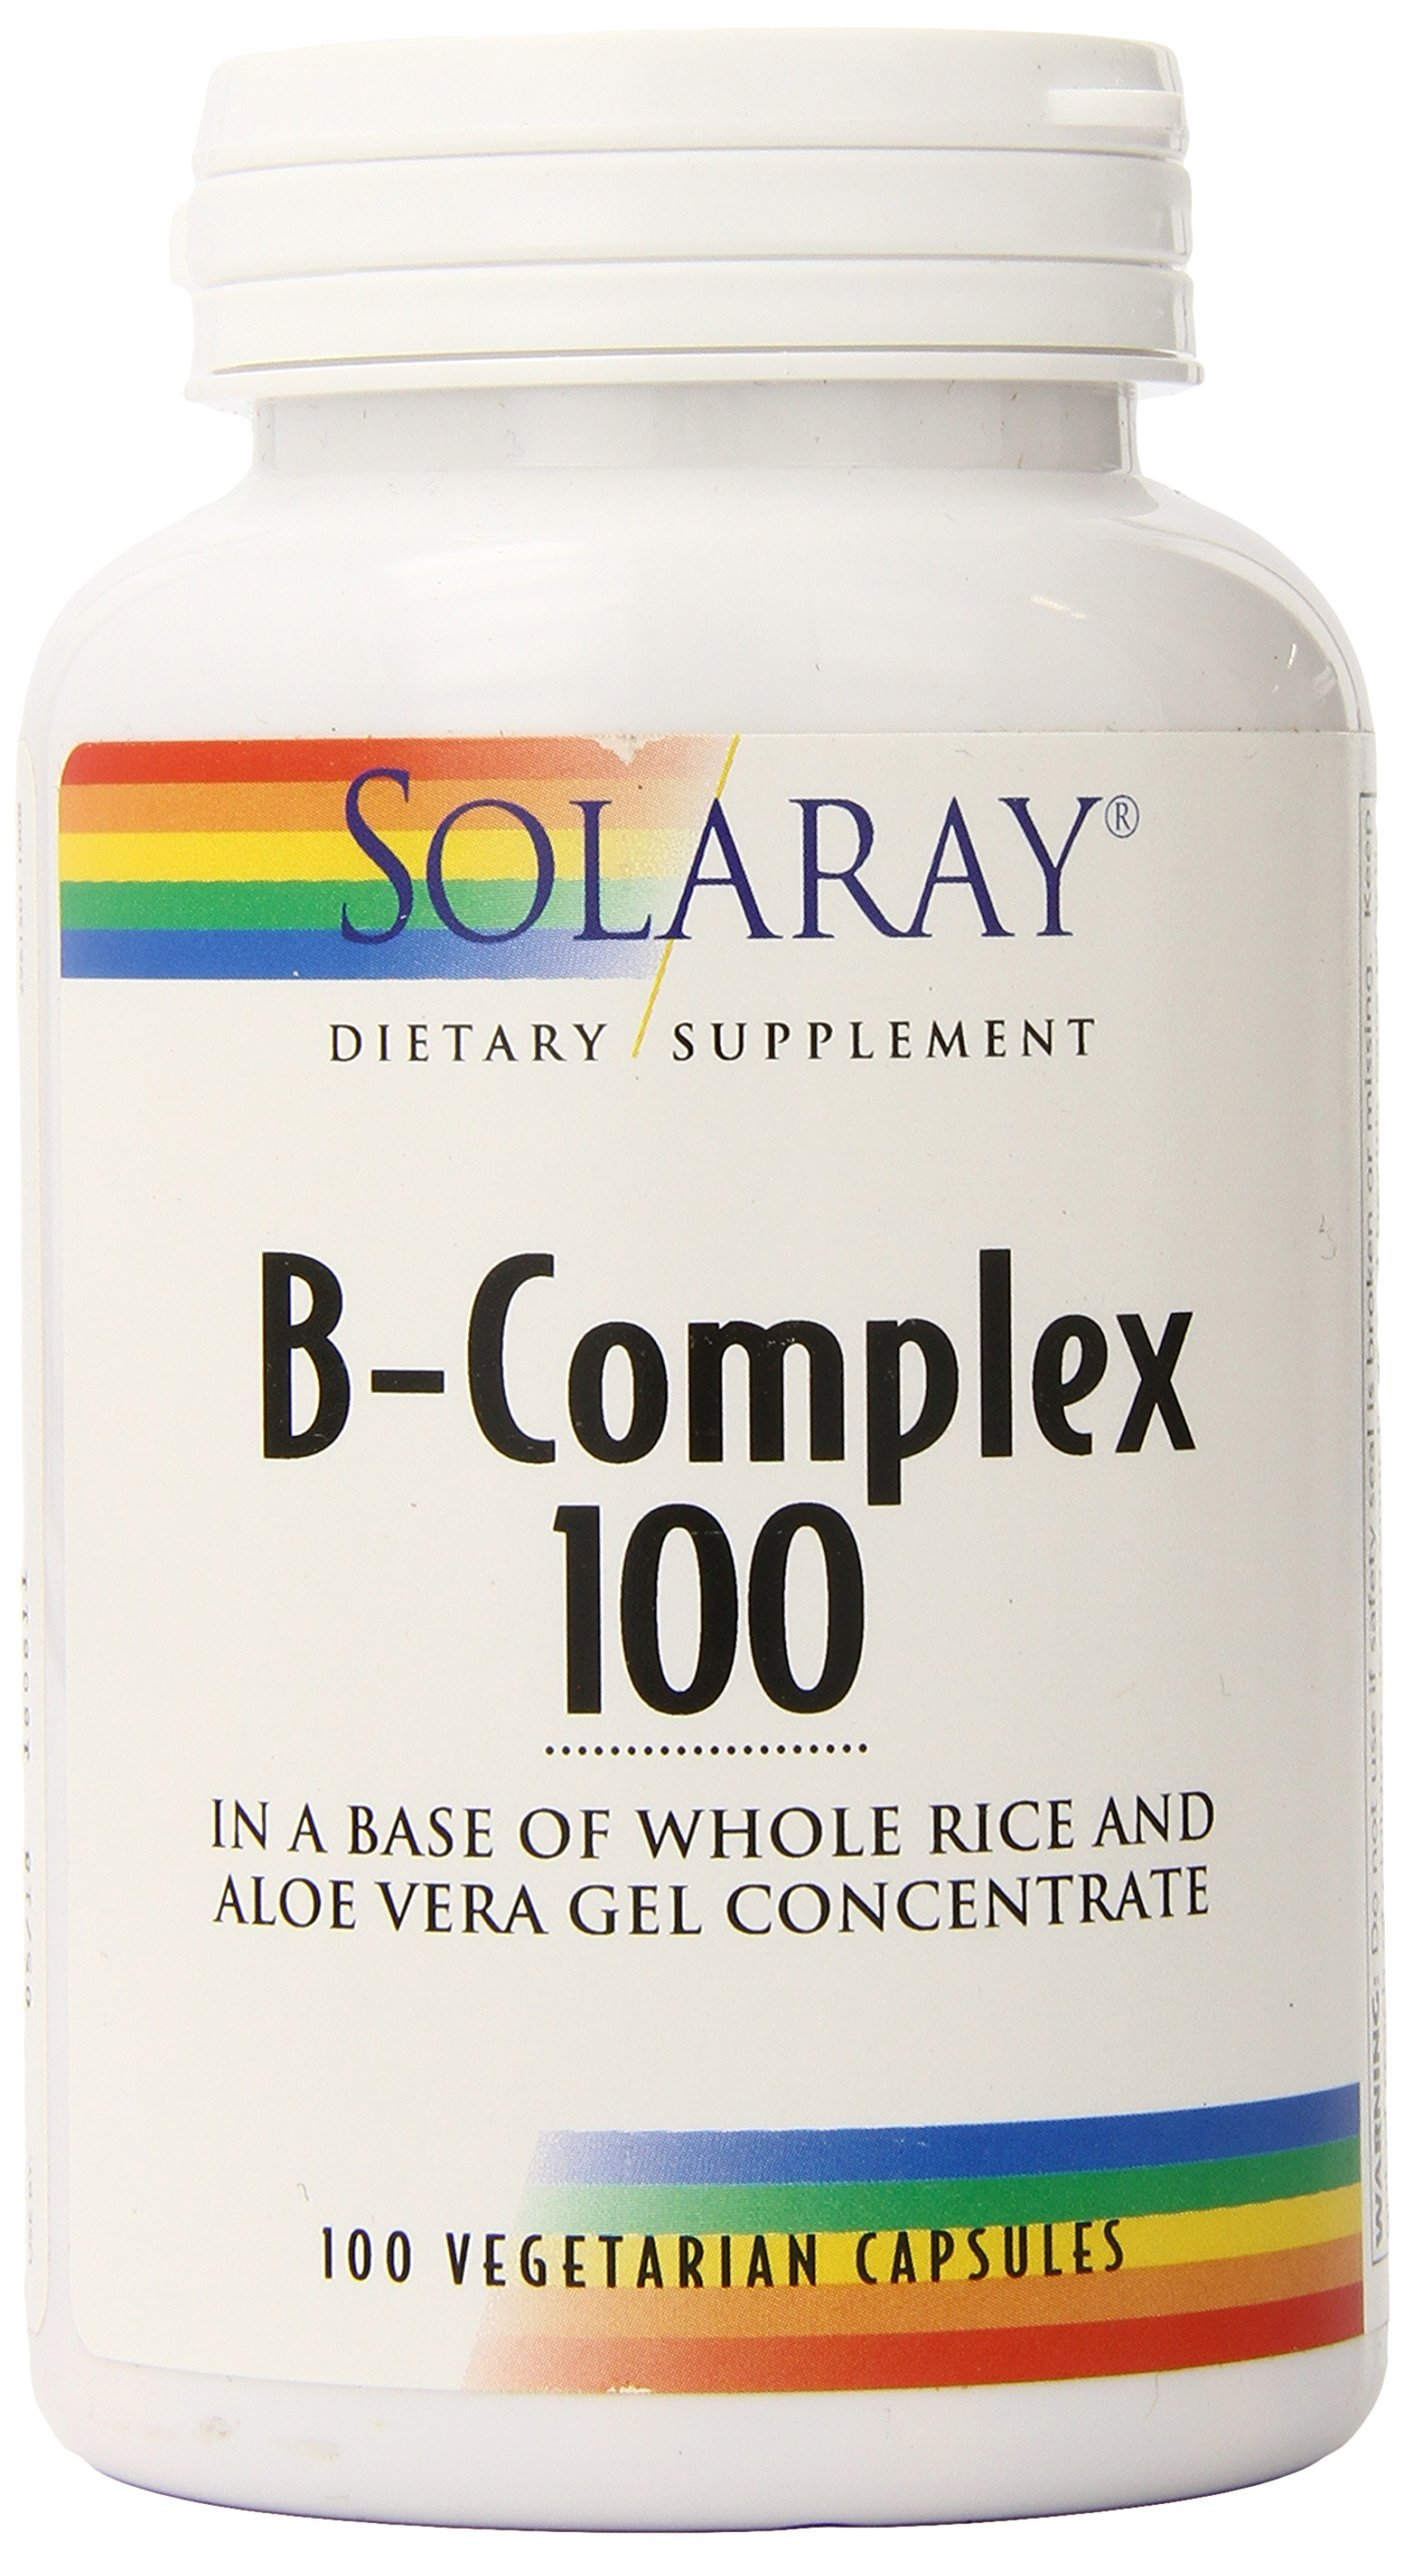 Solaray Vitamin B-Complex 100   Supports Healthy Hair & Skin, Immune System Function, Blood Cell Formation & Energy Metabolism   100 VegCaps